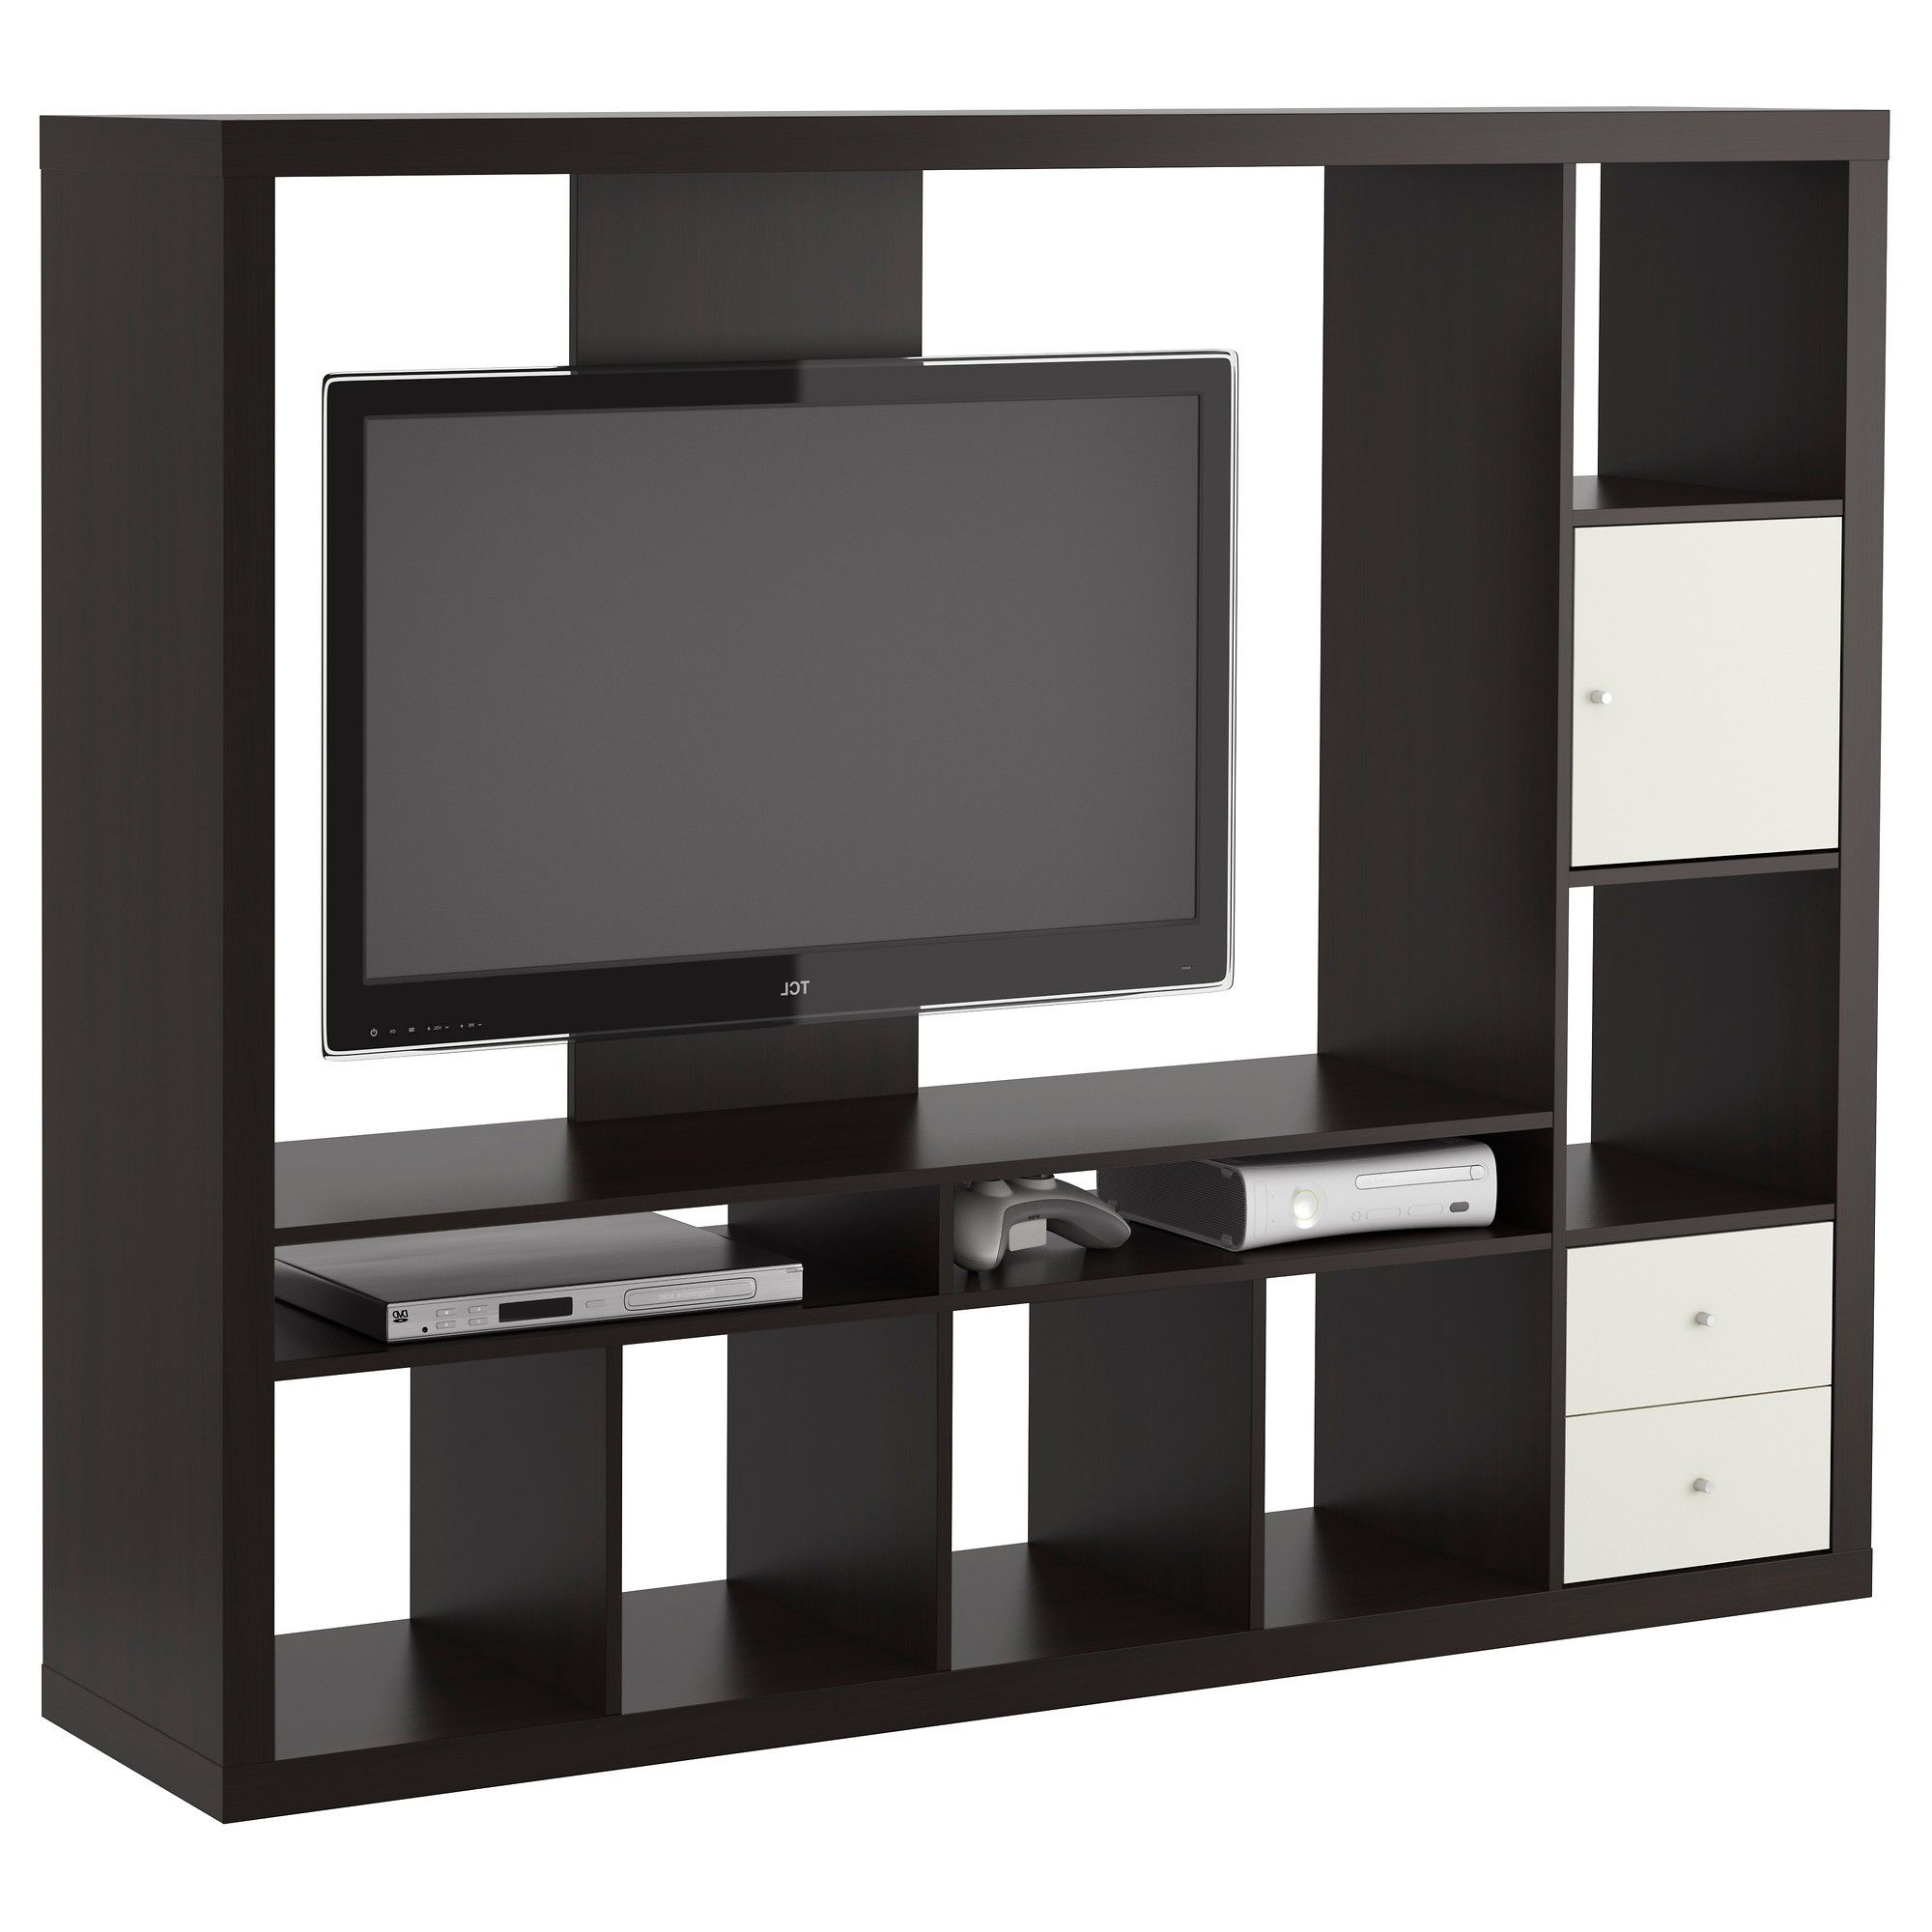 Recent Black Tv Cabinets With Drawers Within Black Polished Solid Wood Tv Cabinet With Several Open Shelves And (View 6 of 20)